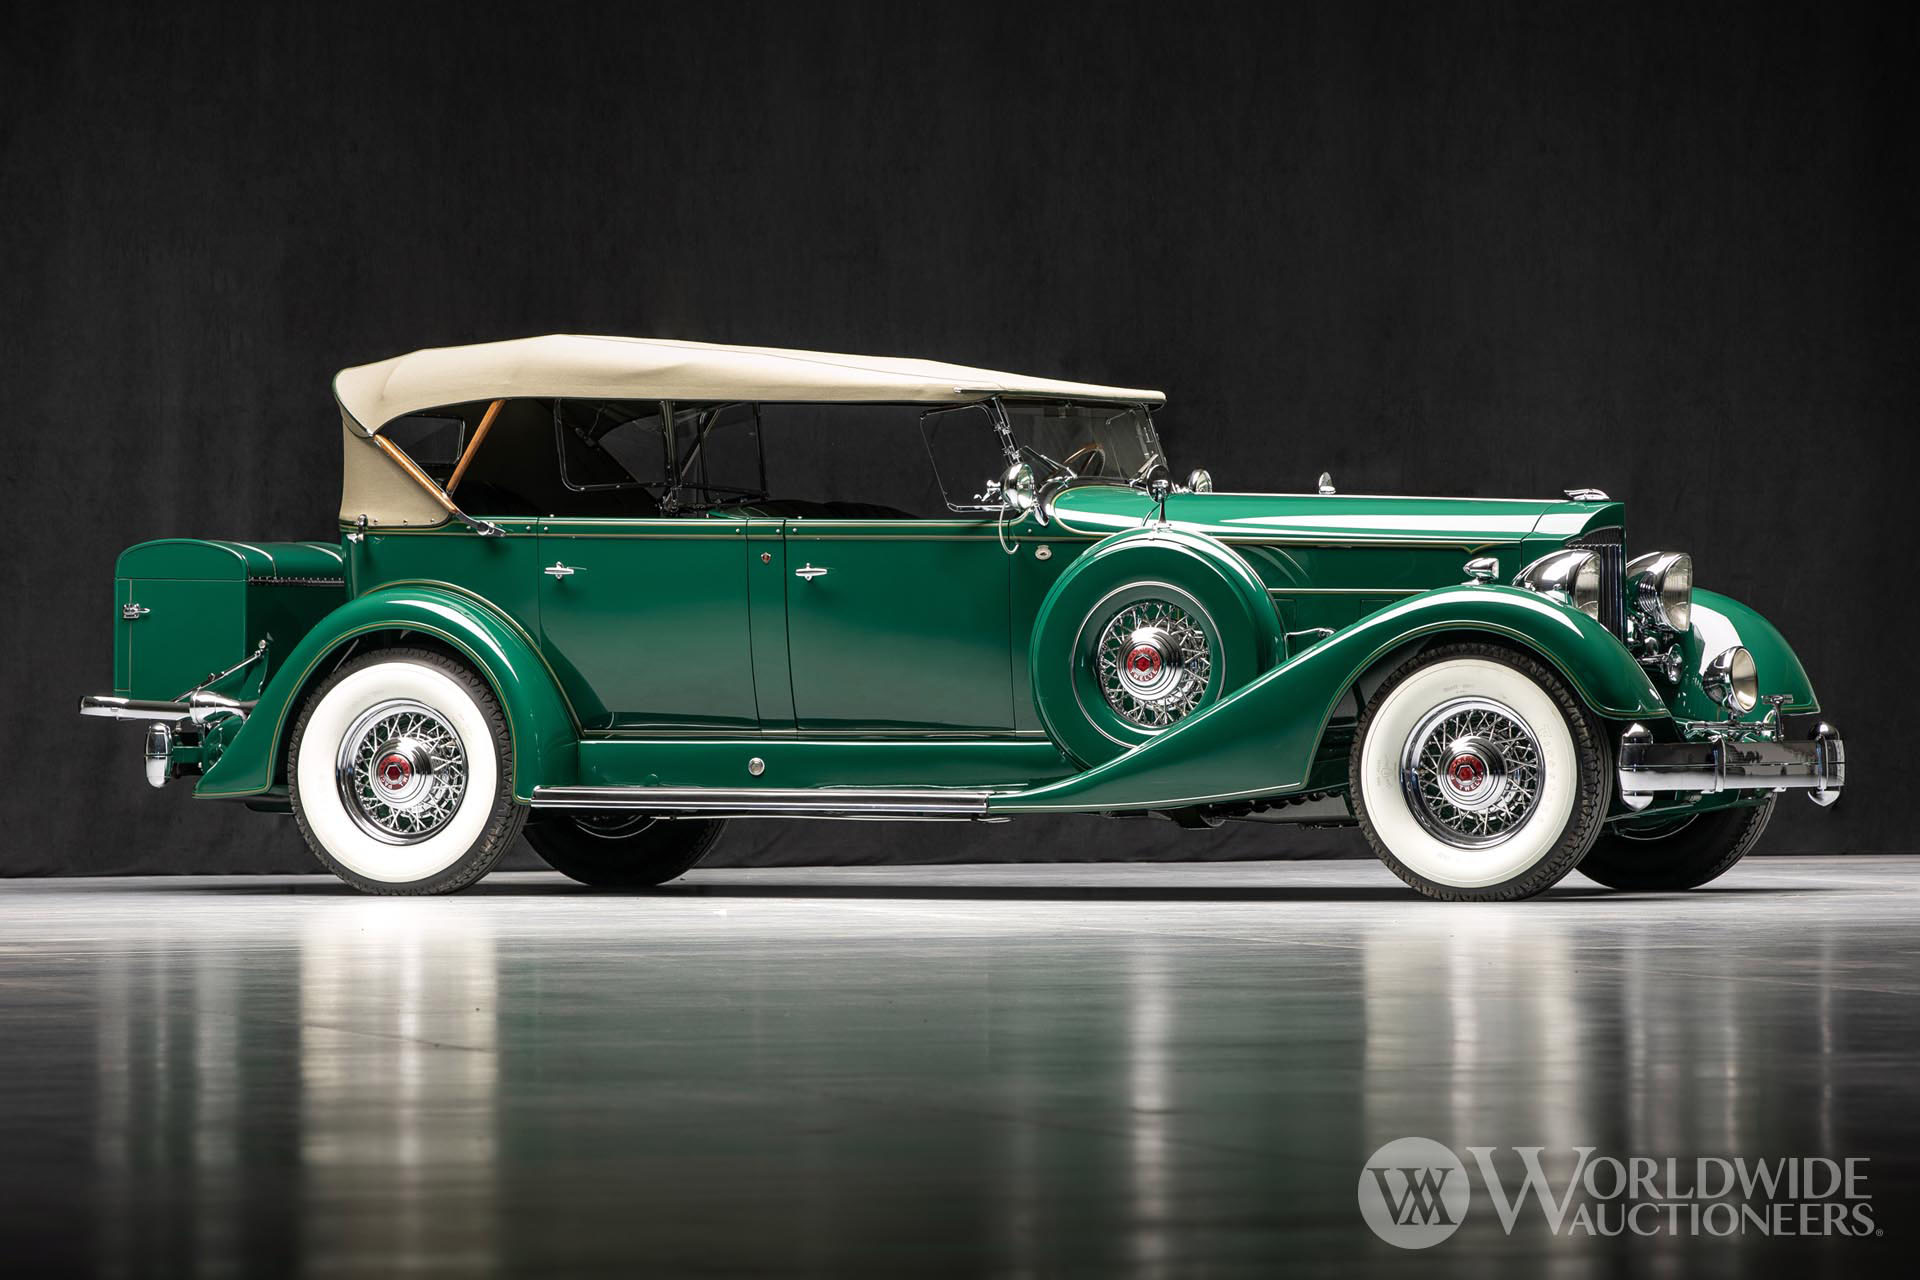 1934 Packard Twelve 1107 Phaeton